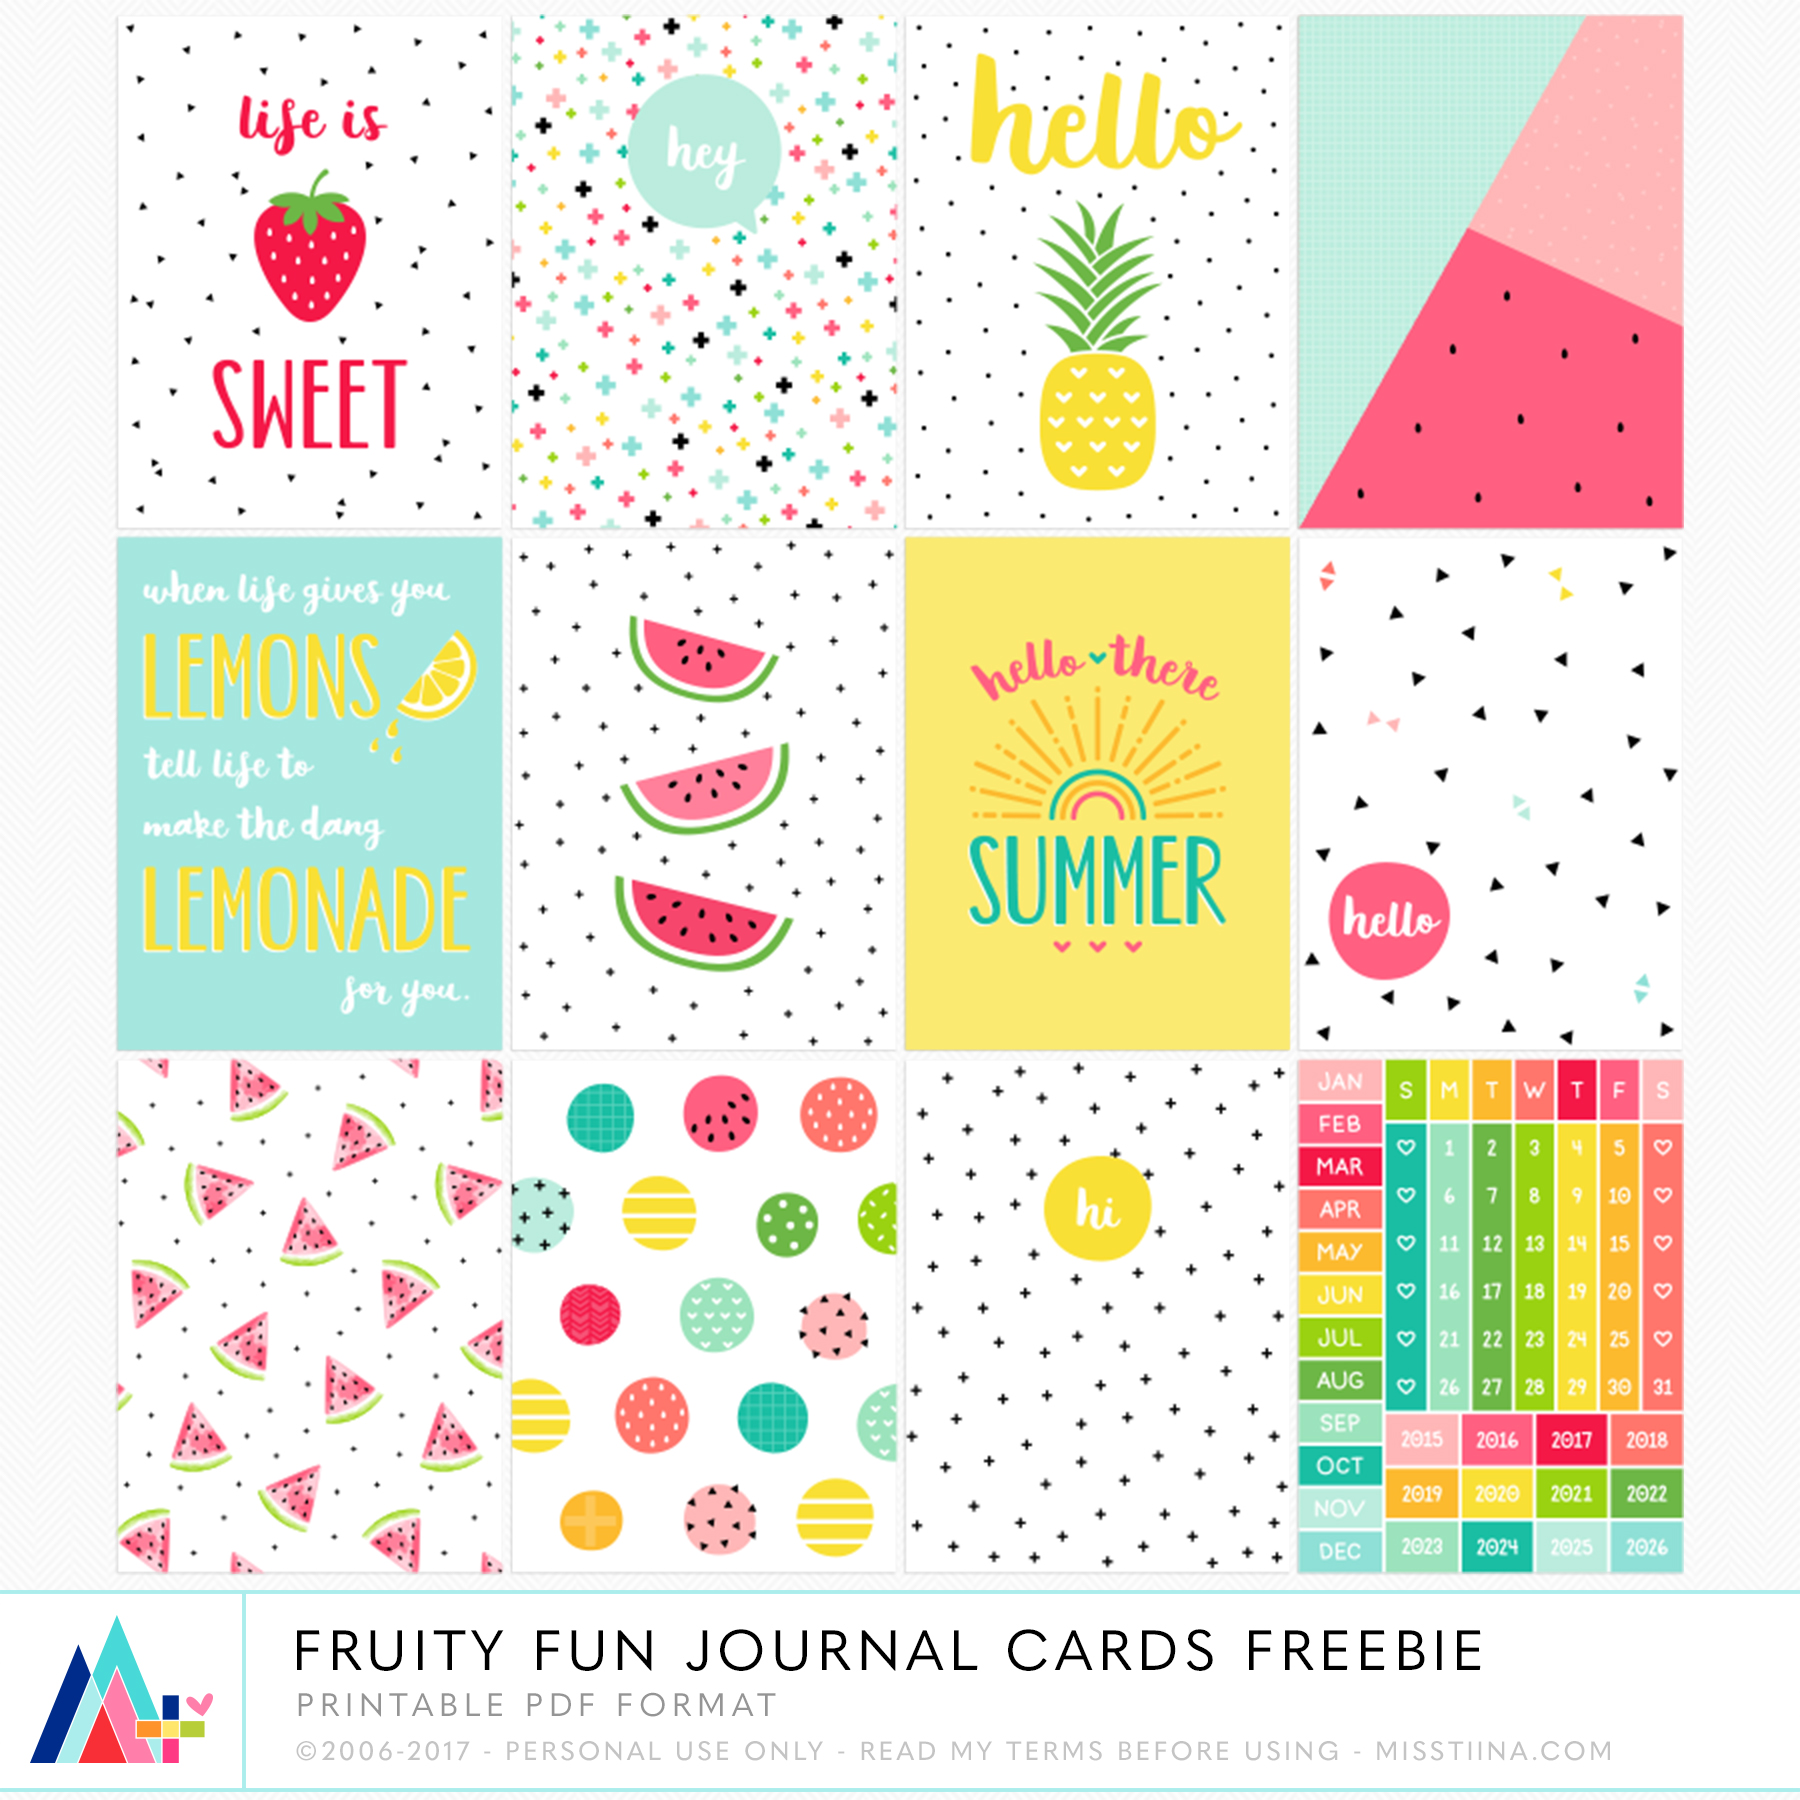 Irresistible image with free printable journal cards